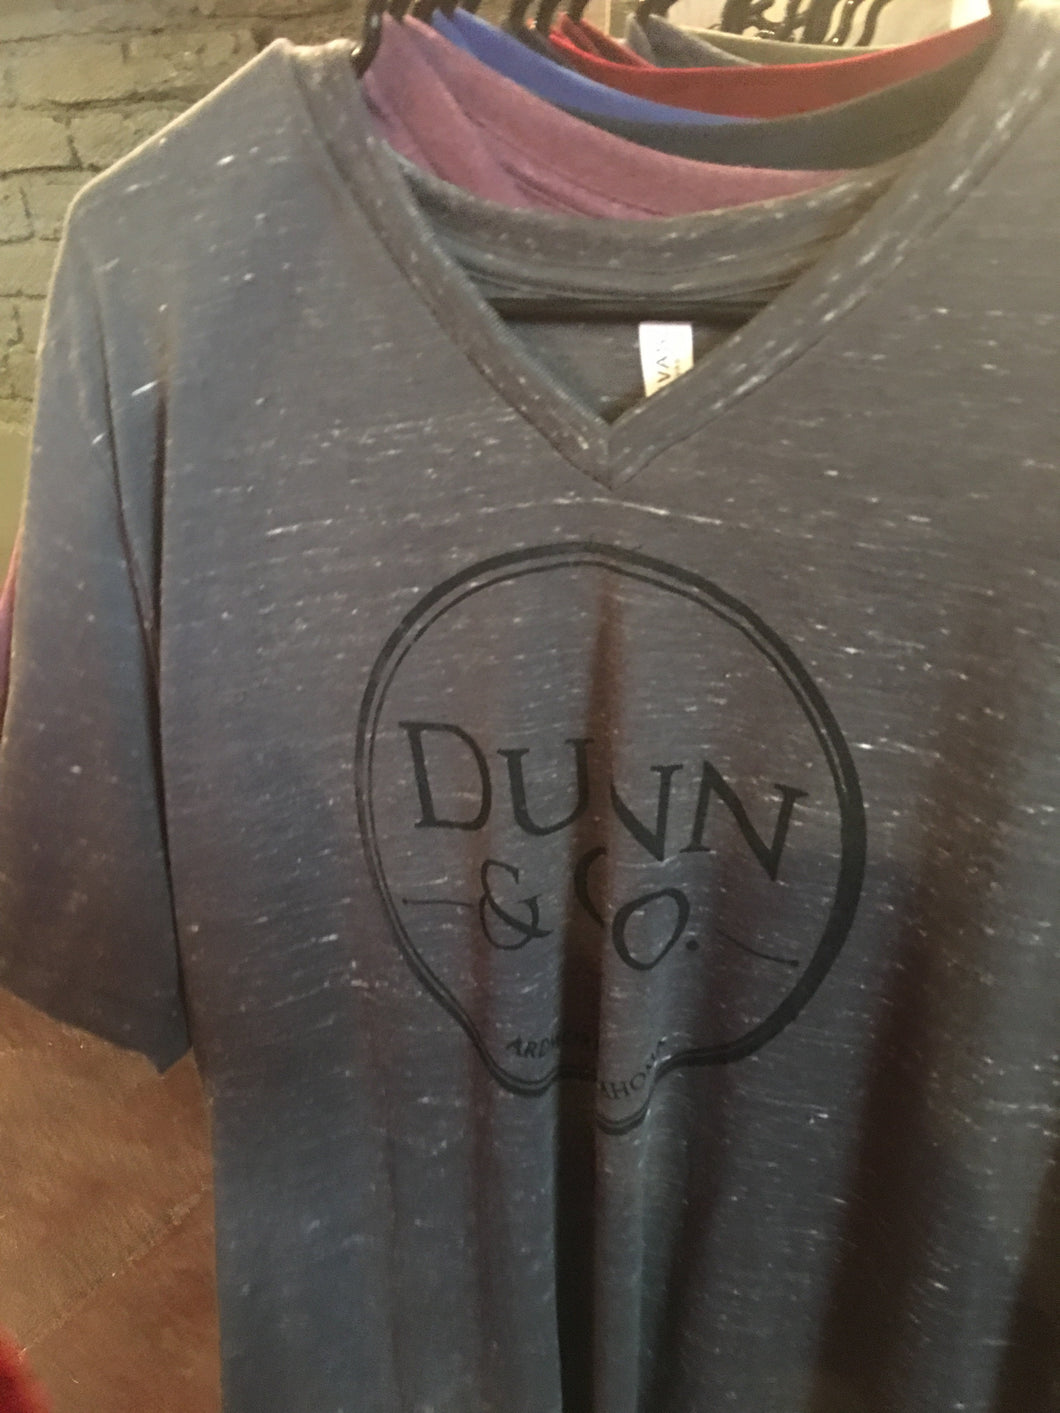 Dunn & Co. Screenprint Shirt - v-neck grey